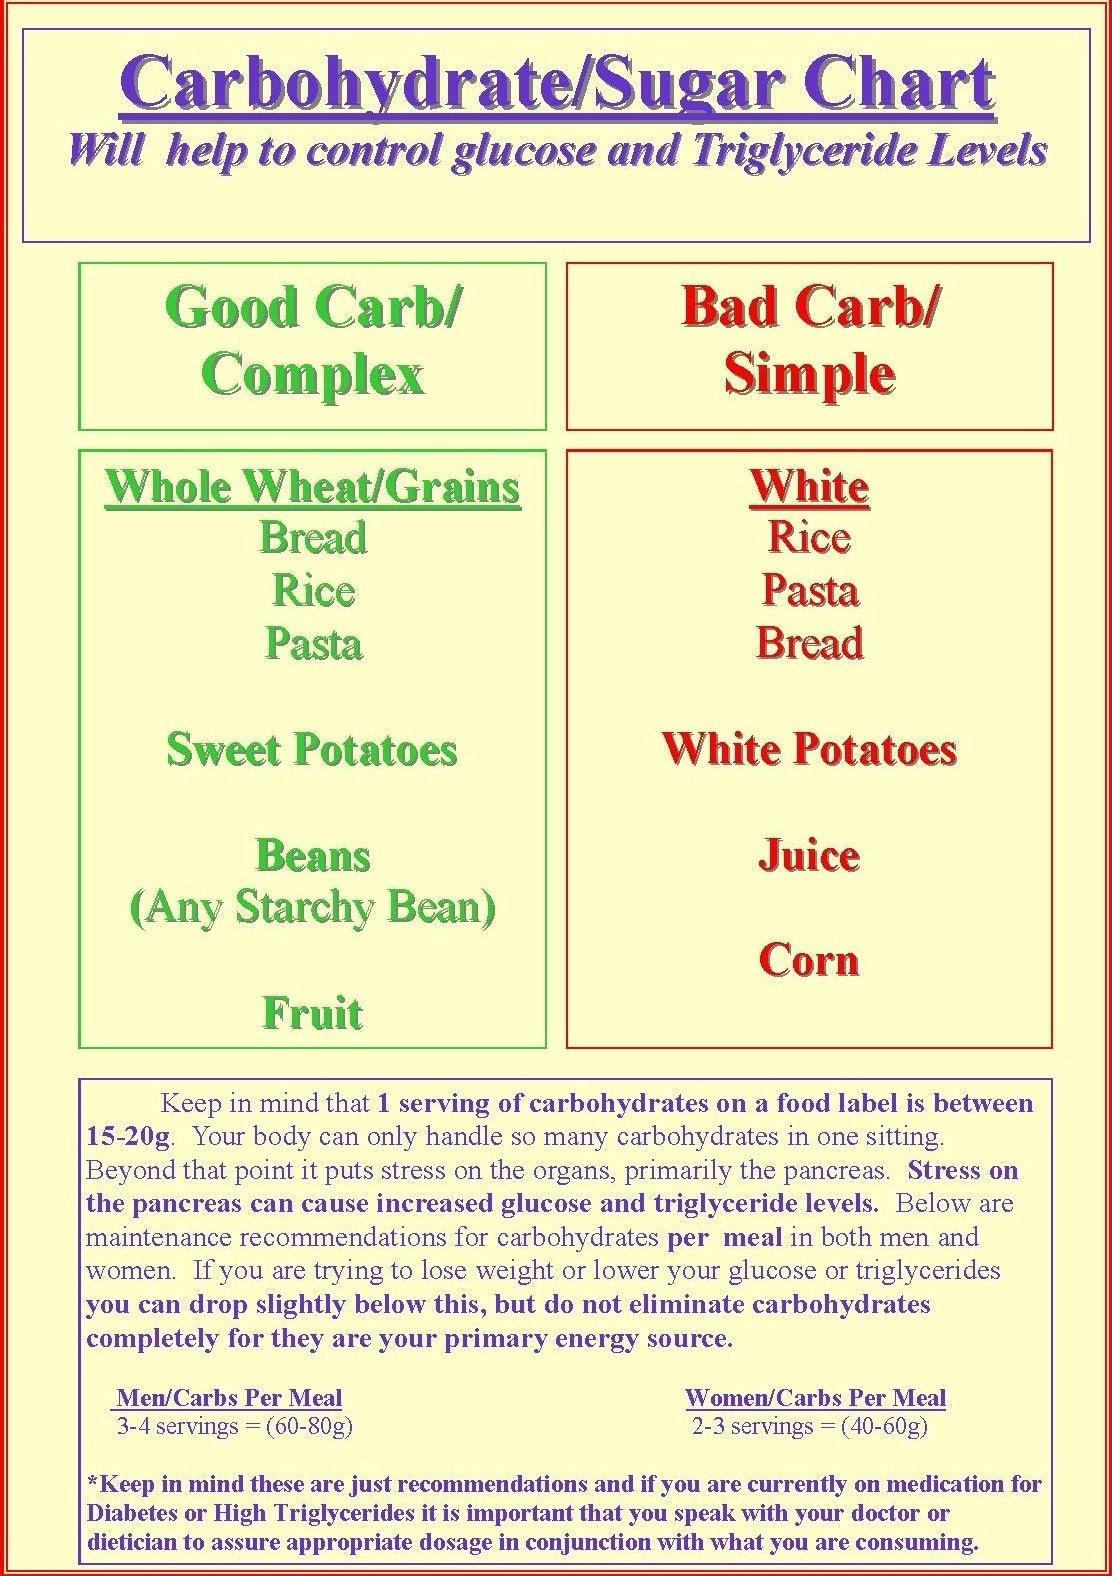 Free Print Carb Counter Chart   Carbohydrate/sugar Chart   Low Carb - Free Printable Carb Counter Chart